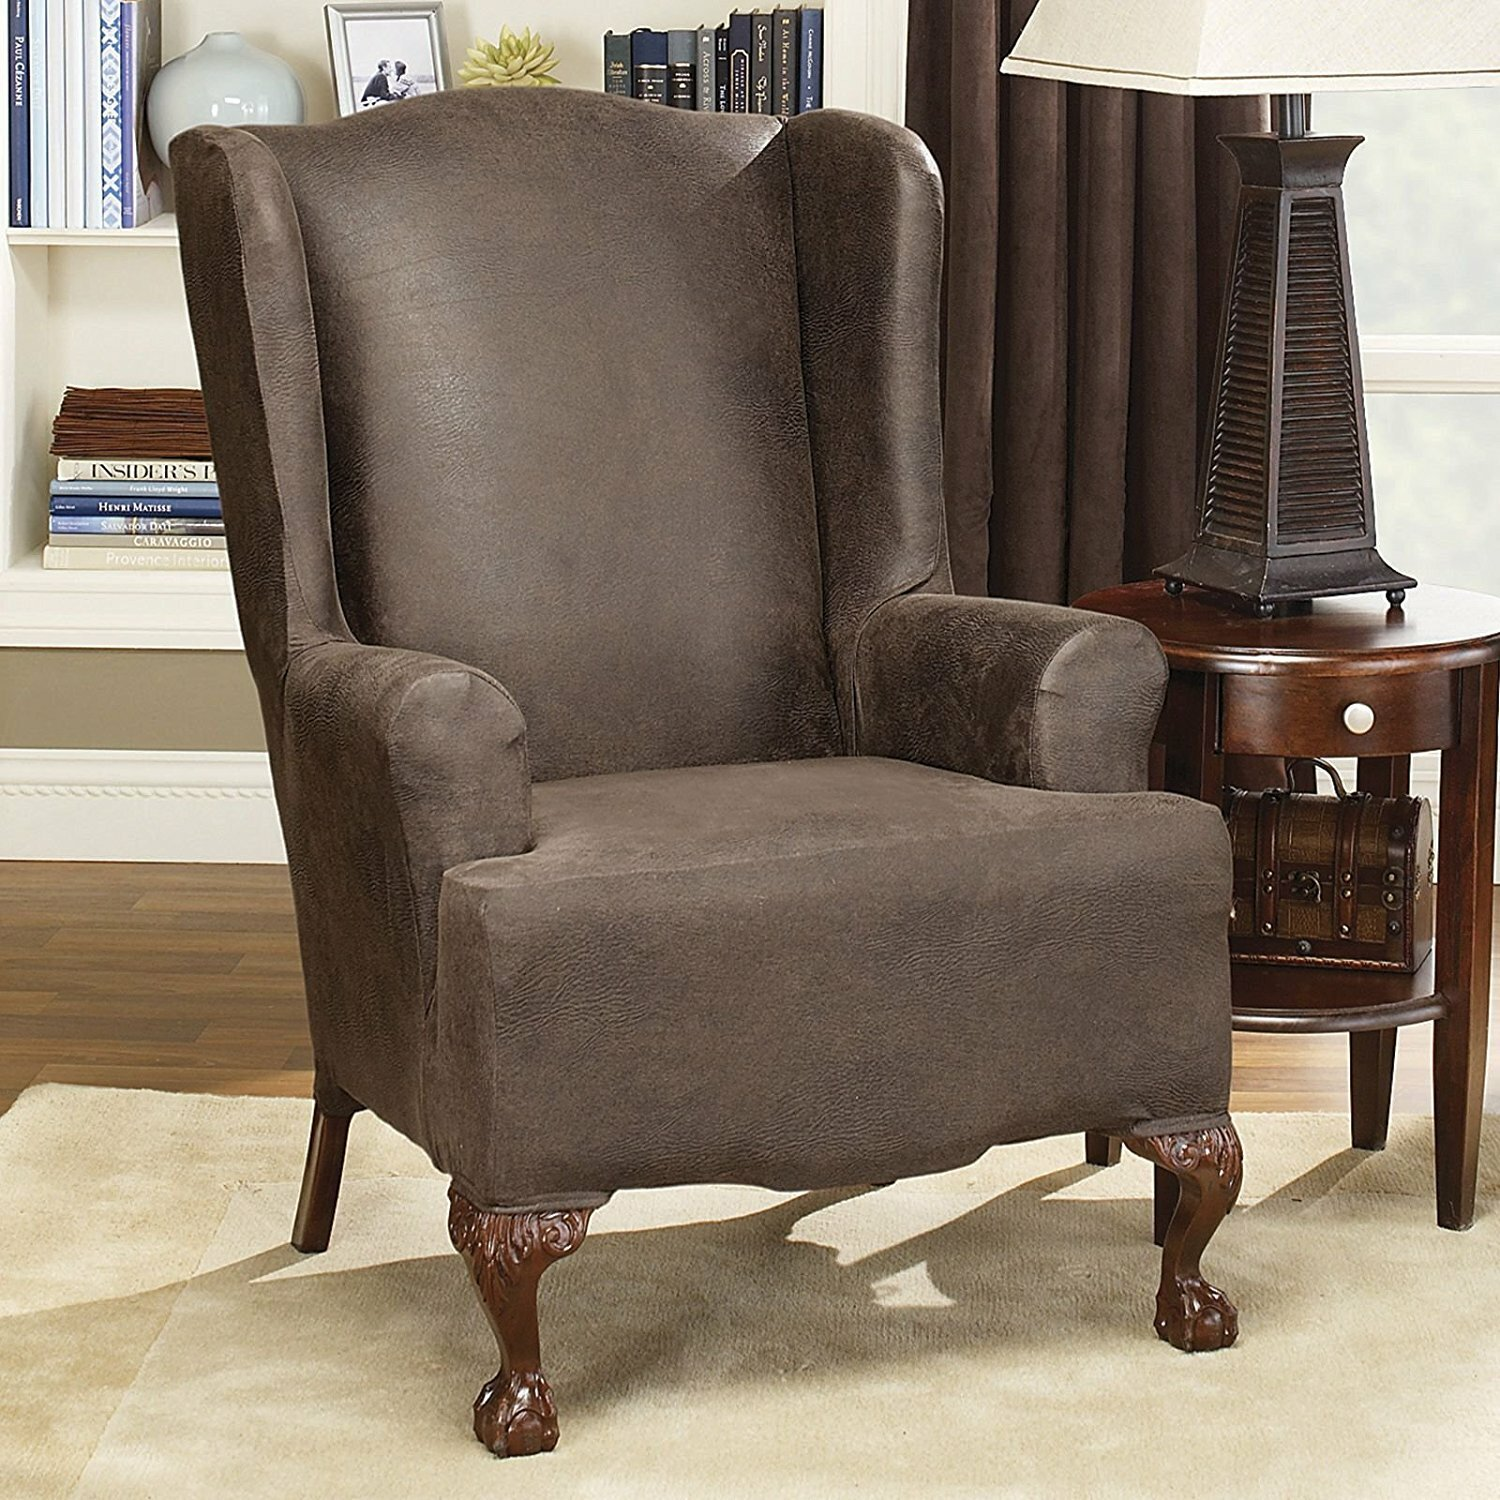 beautiful living room chair slipcovers ideas - amazing decorating